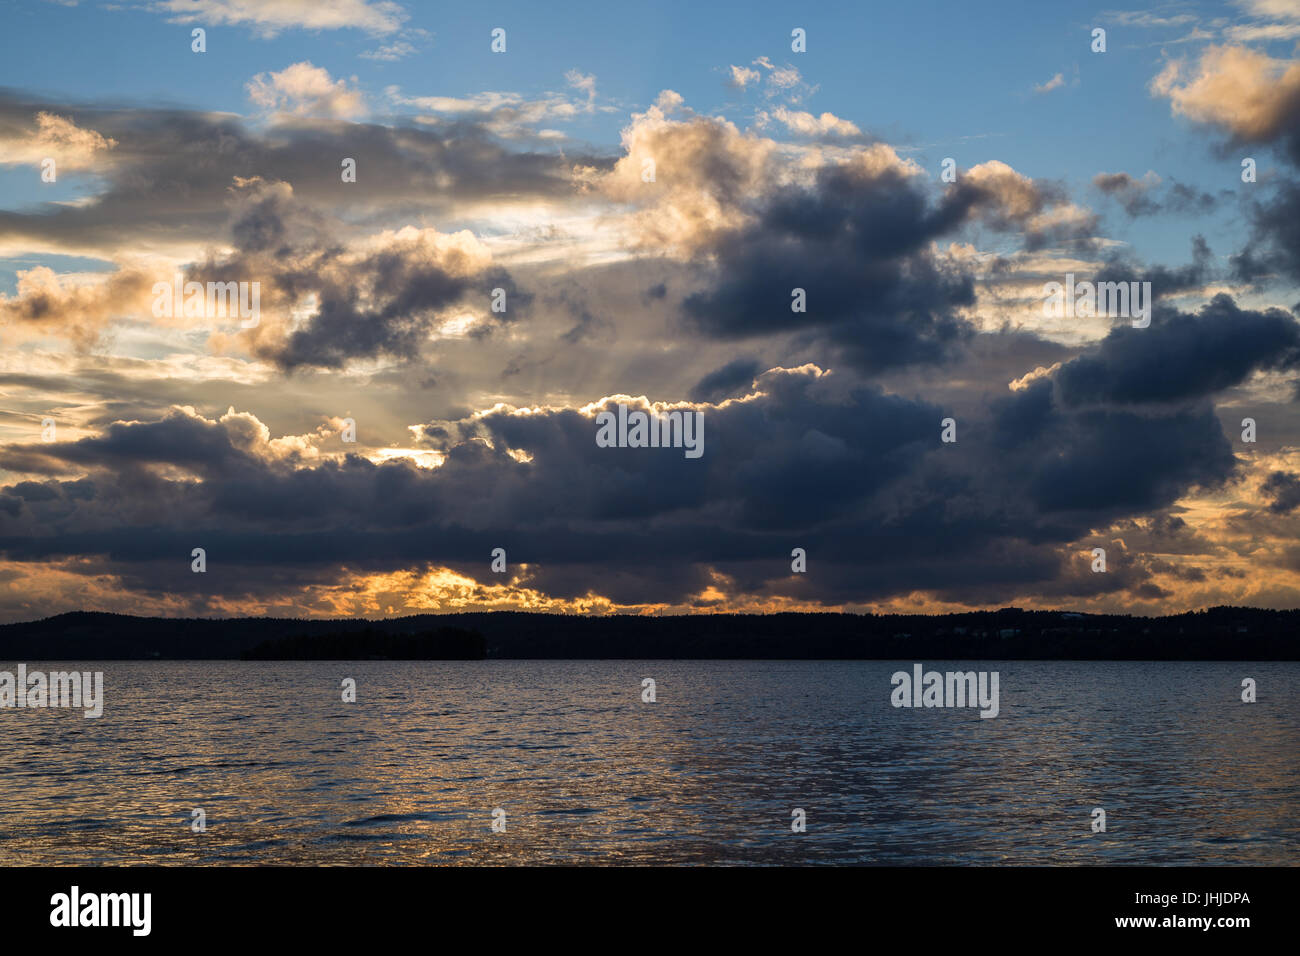 View of dark and dramatic clouds and a lake at sunset in Finland in the summer. - Stock Image